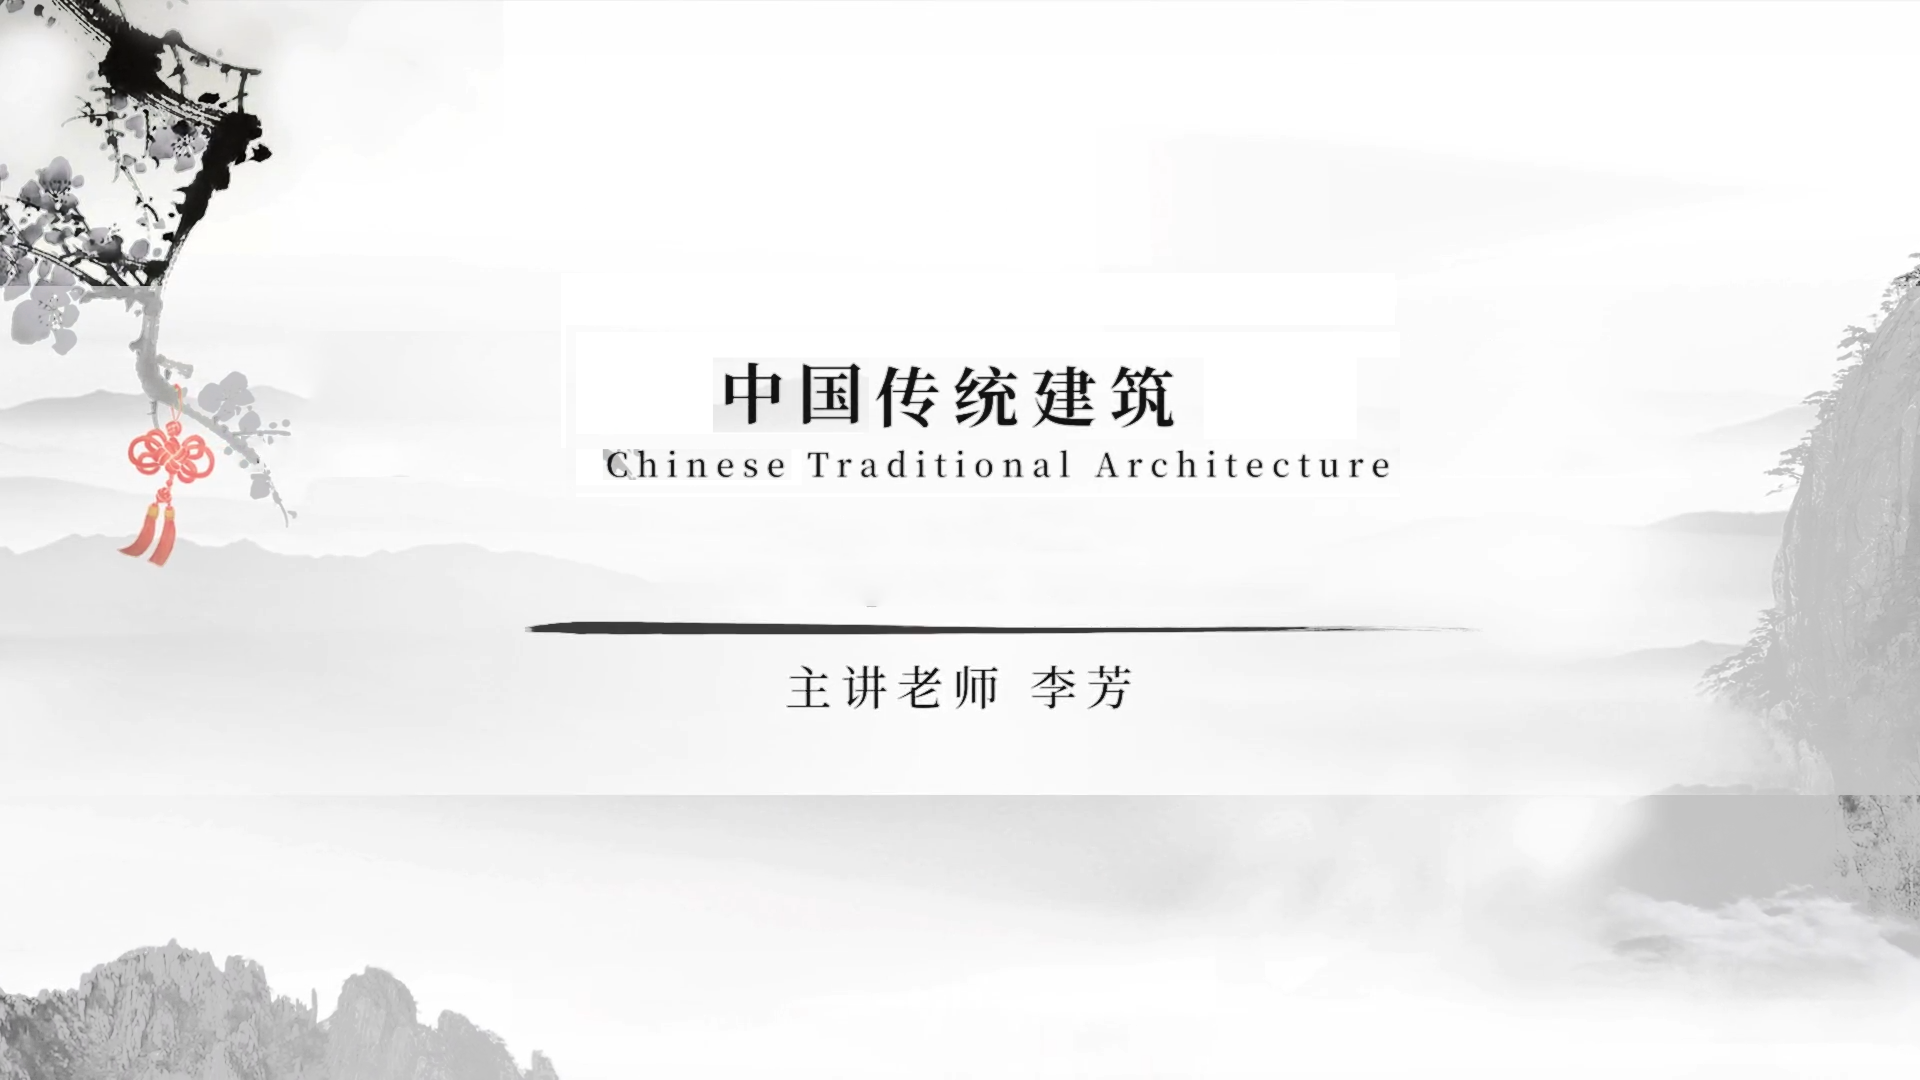 Chinese Culture Course 4: Traditional Chinese Architecture